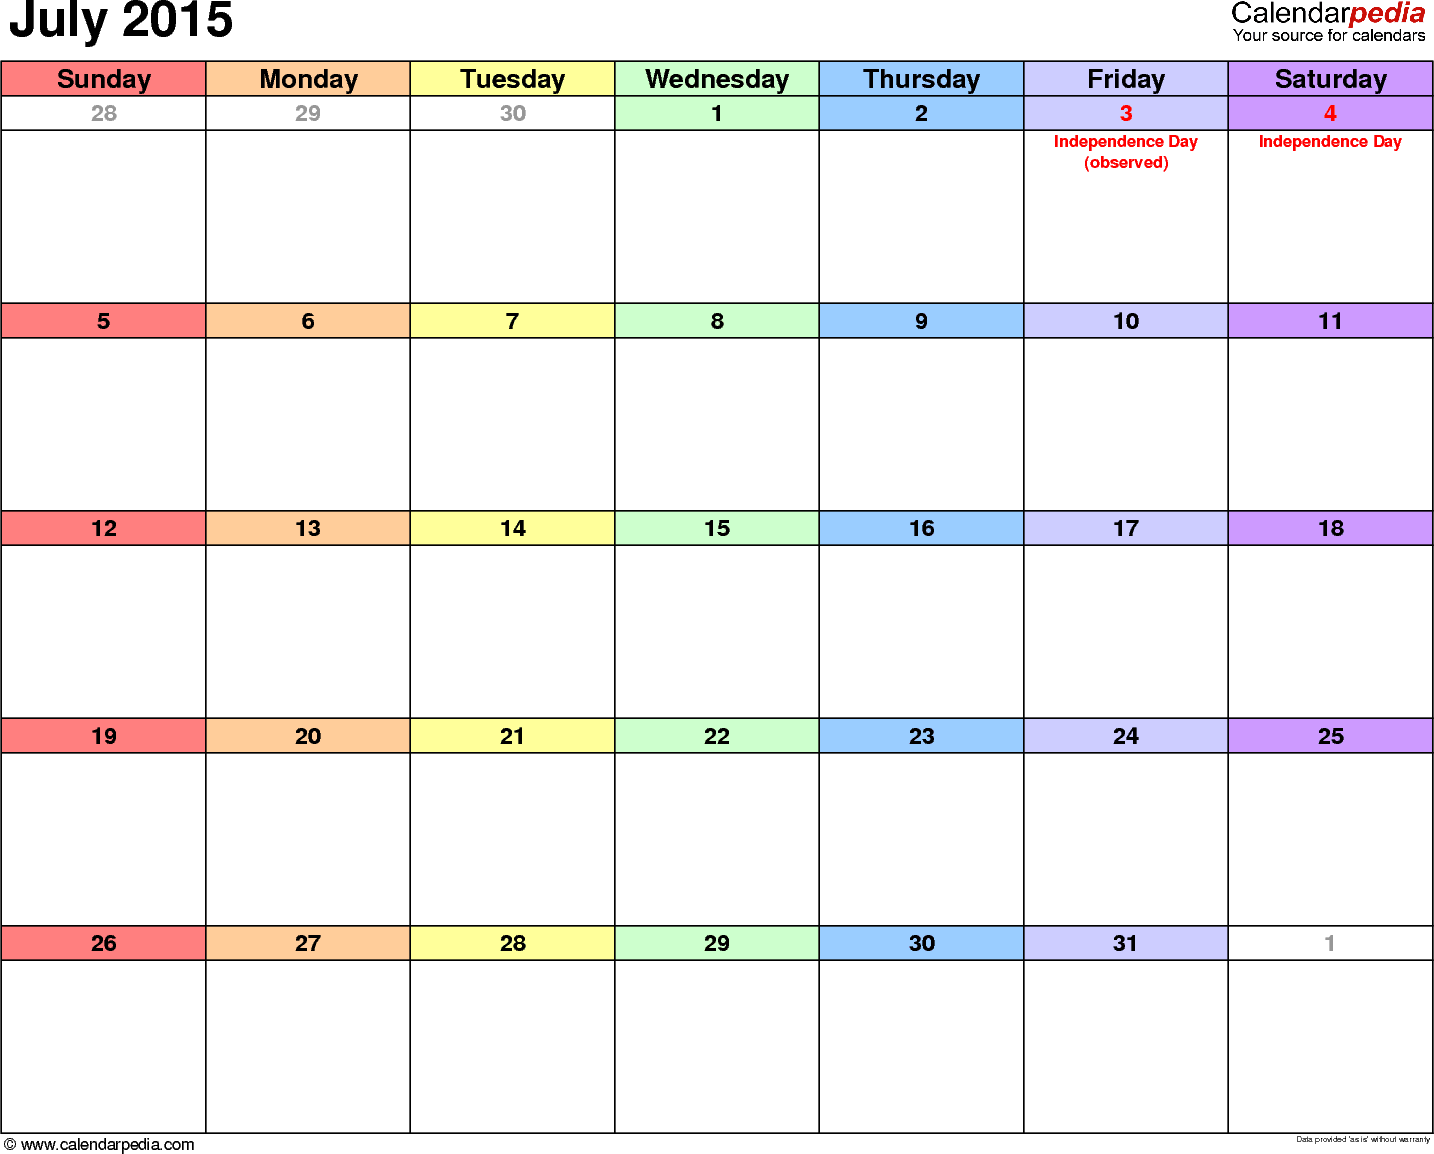 Calendar templates July 2015 in landscape format